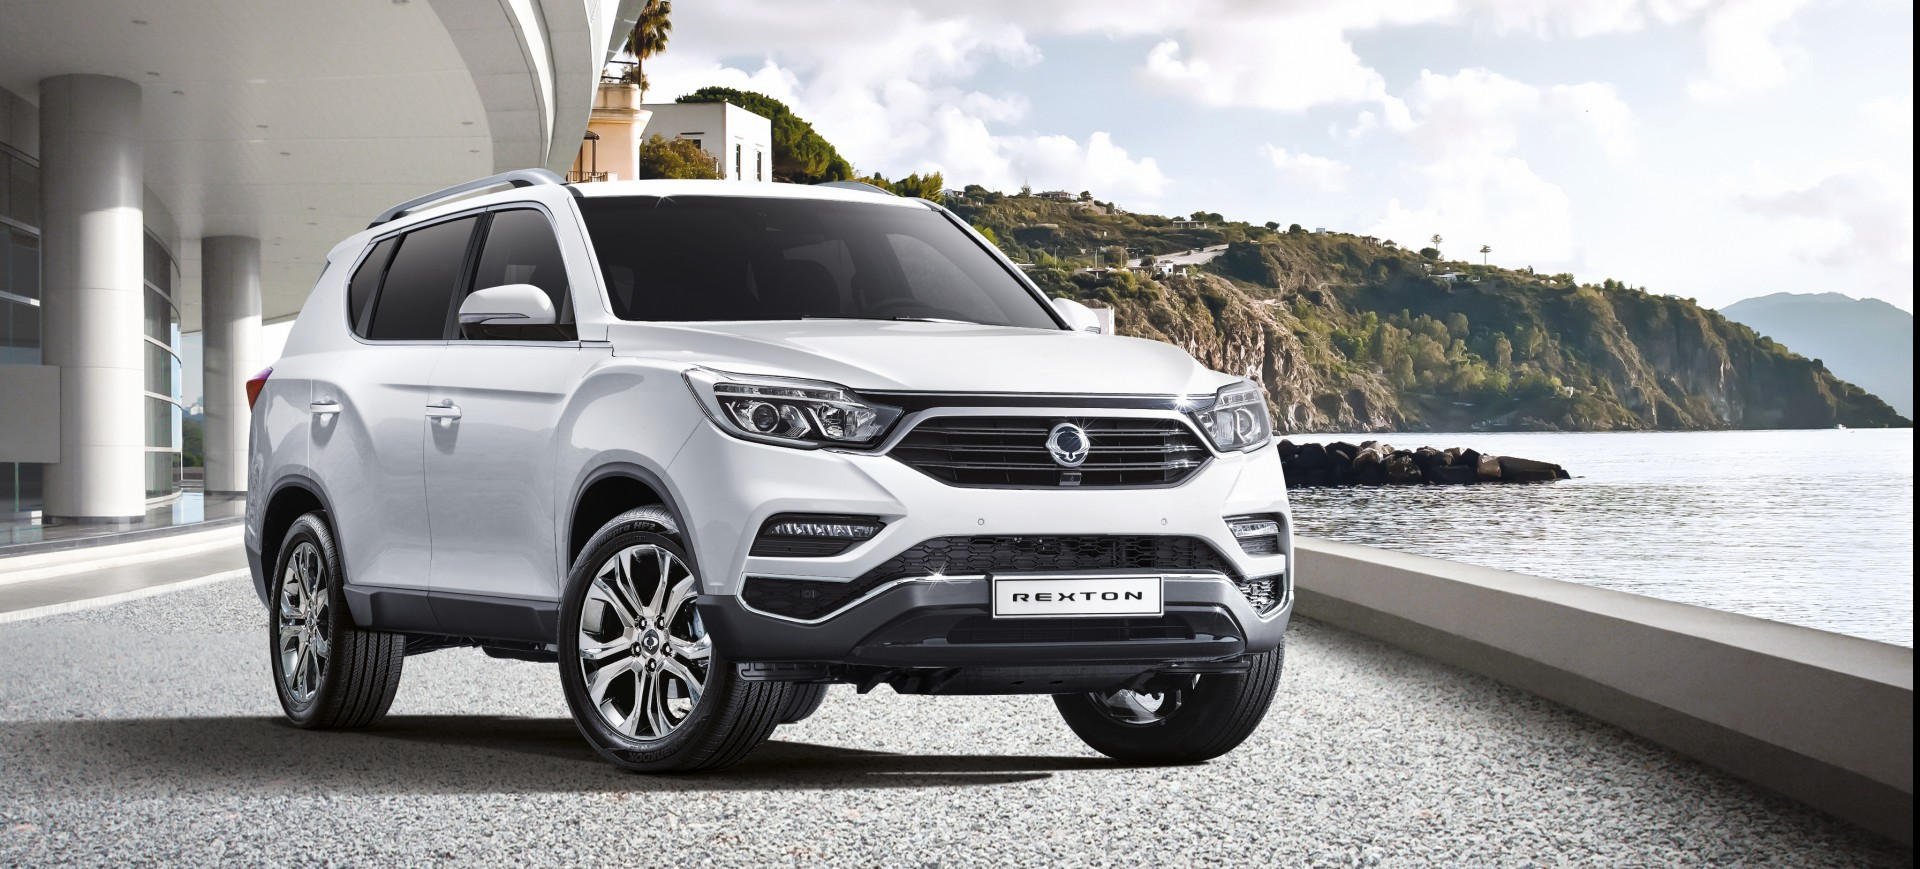 SsangYong Rexton - The new authentic SUV